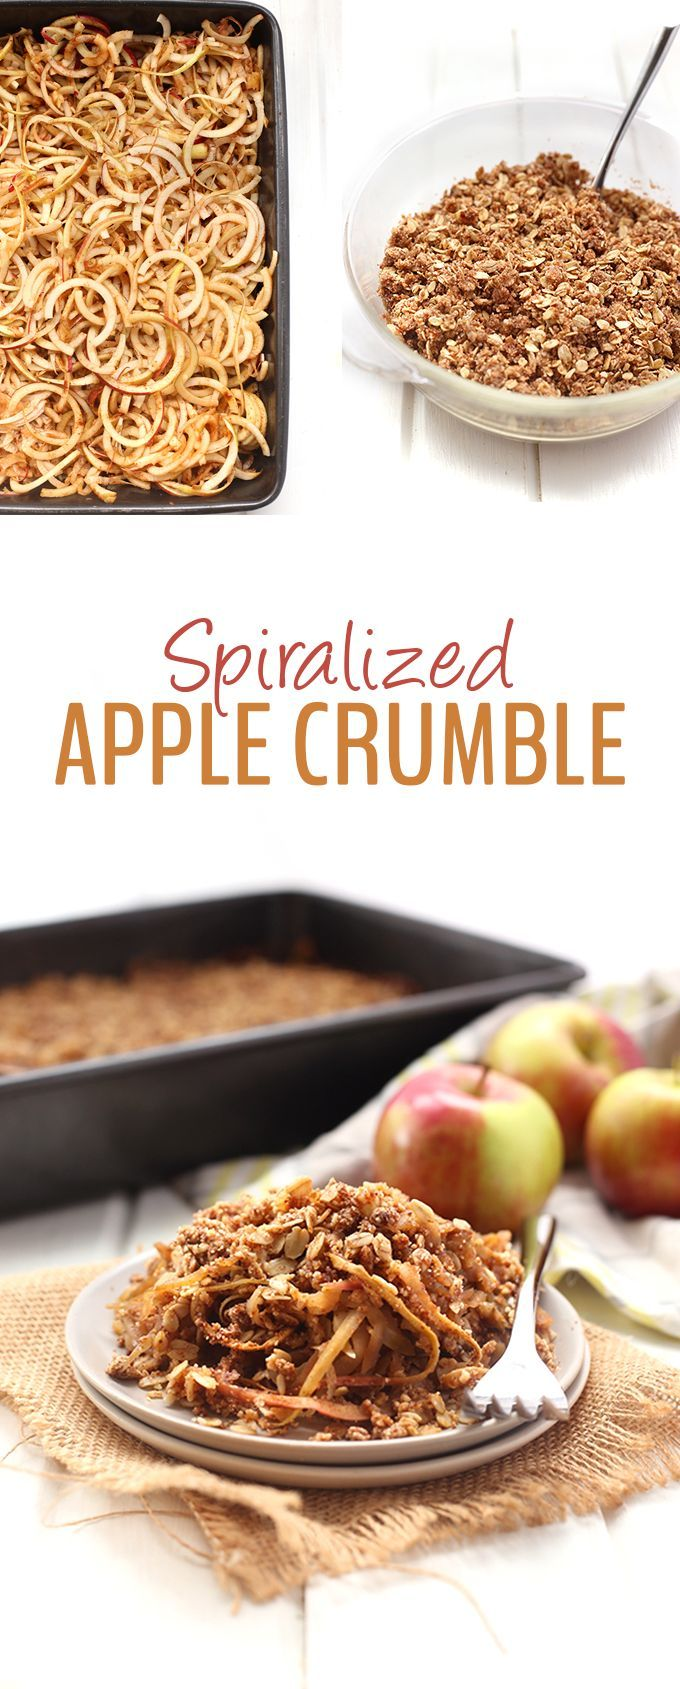 Instead of spending all your time chopping, spiralize those apples for a quick and healthy Spiralized Apple Crumble. With curly apple noodles and a crispy crumble layer this recipe will be a huge dessert hit!